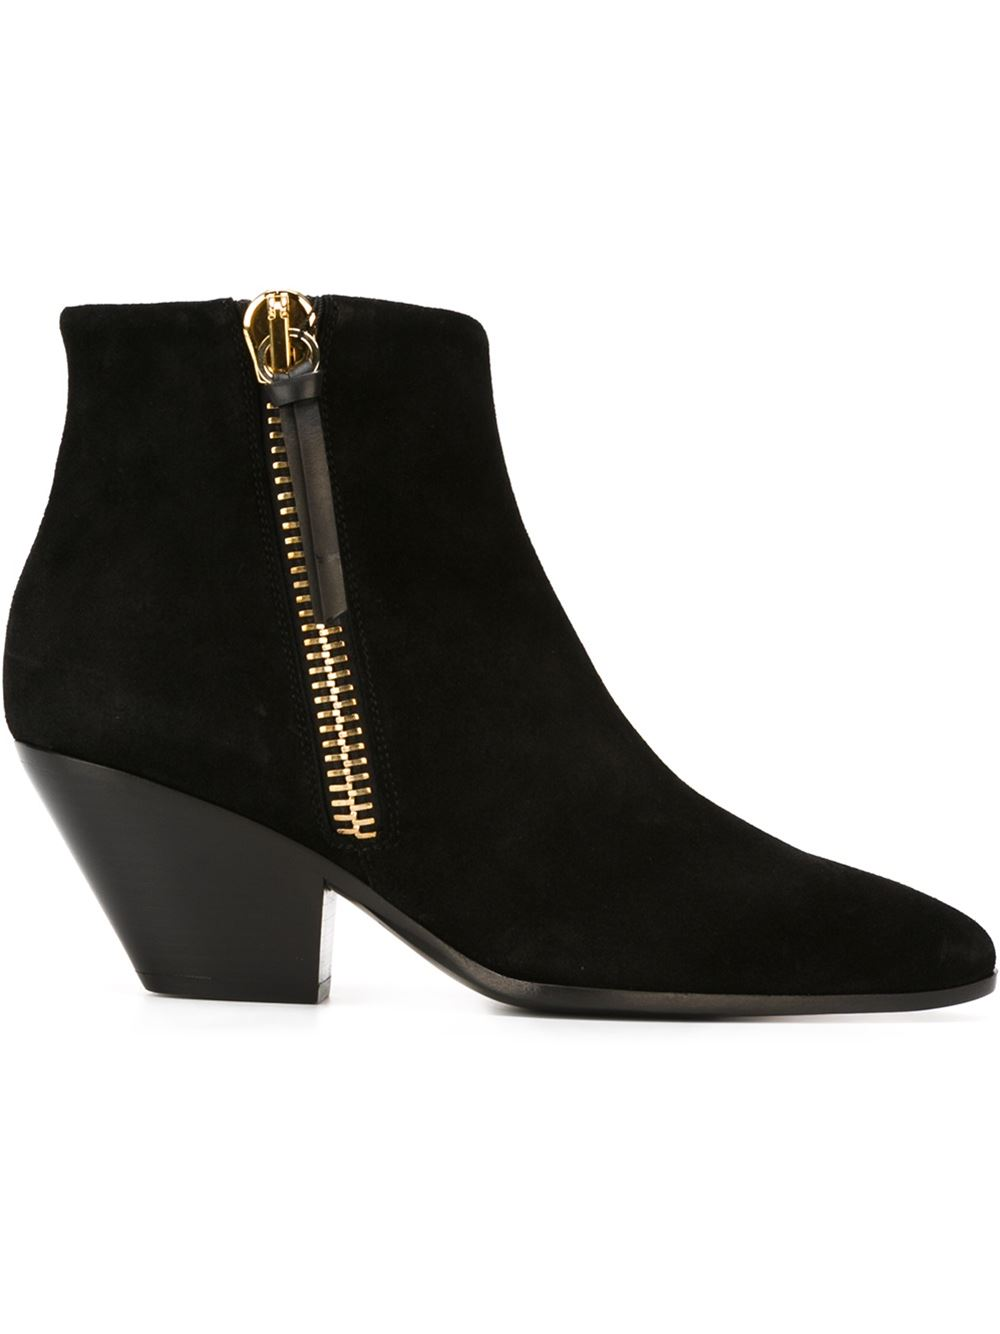 Short Black Boots Guide: 30 Amazing